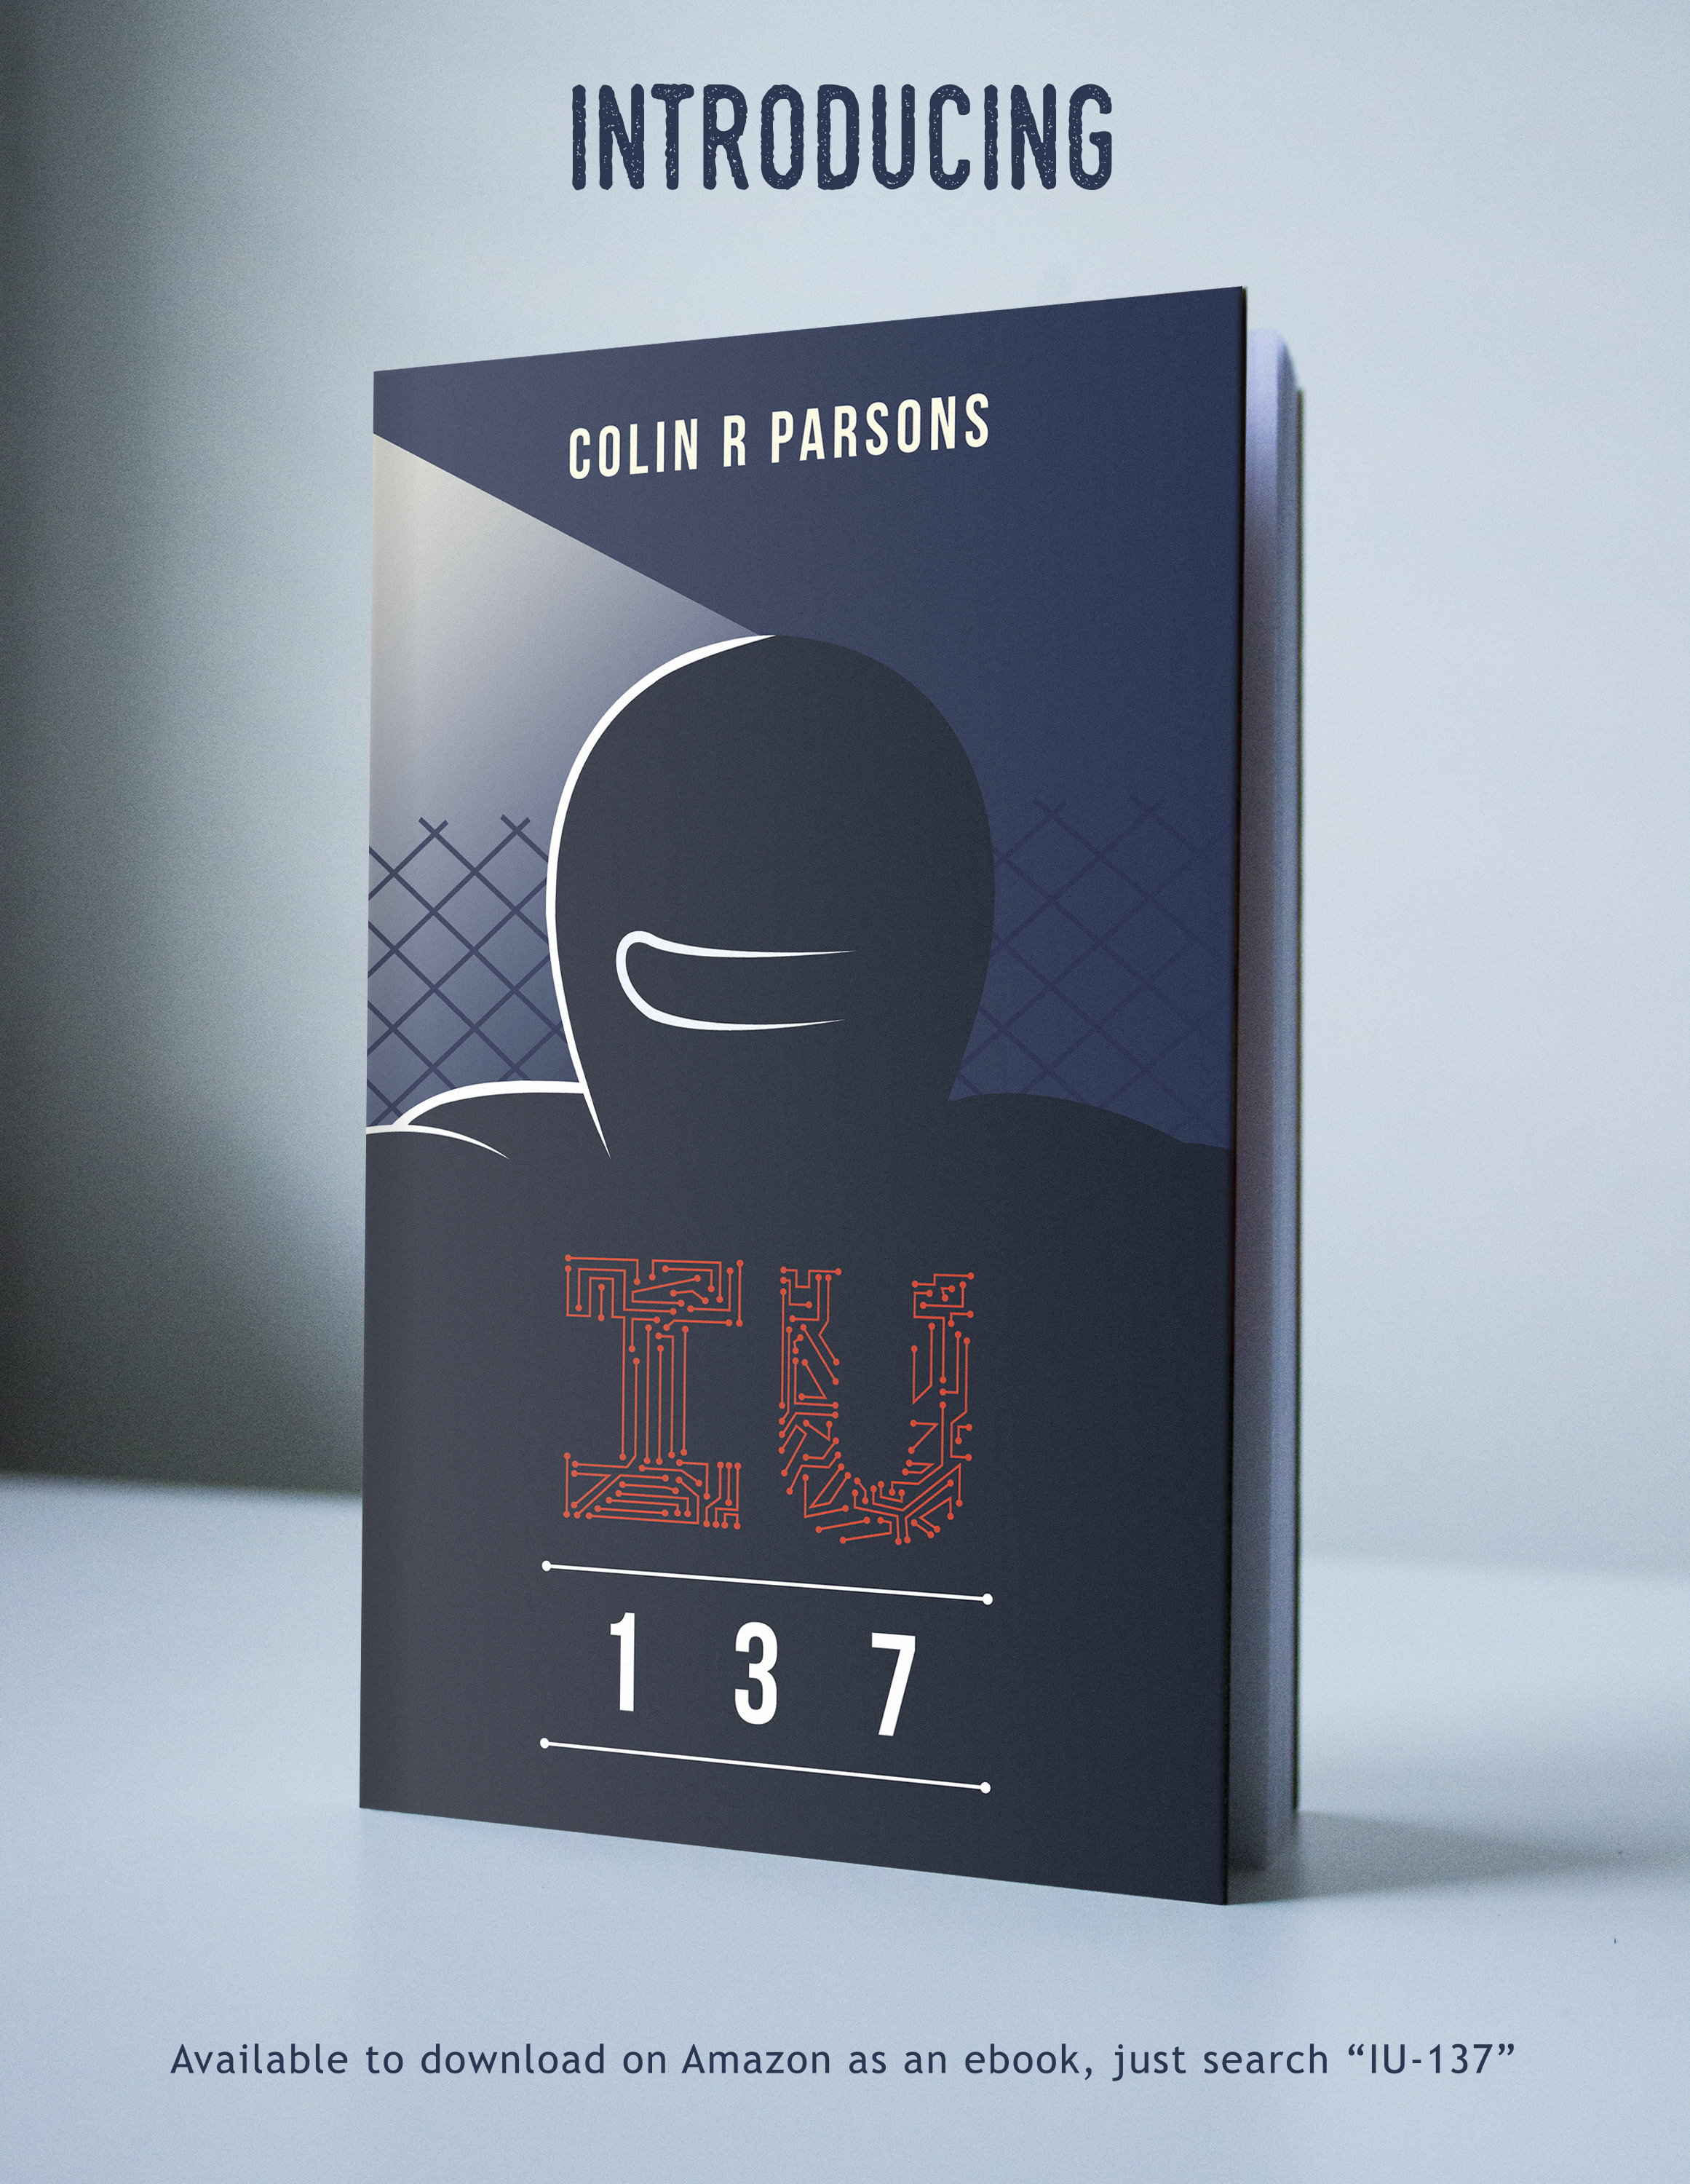 IU-137 book cover